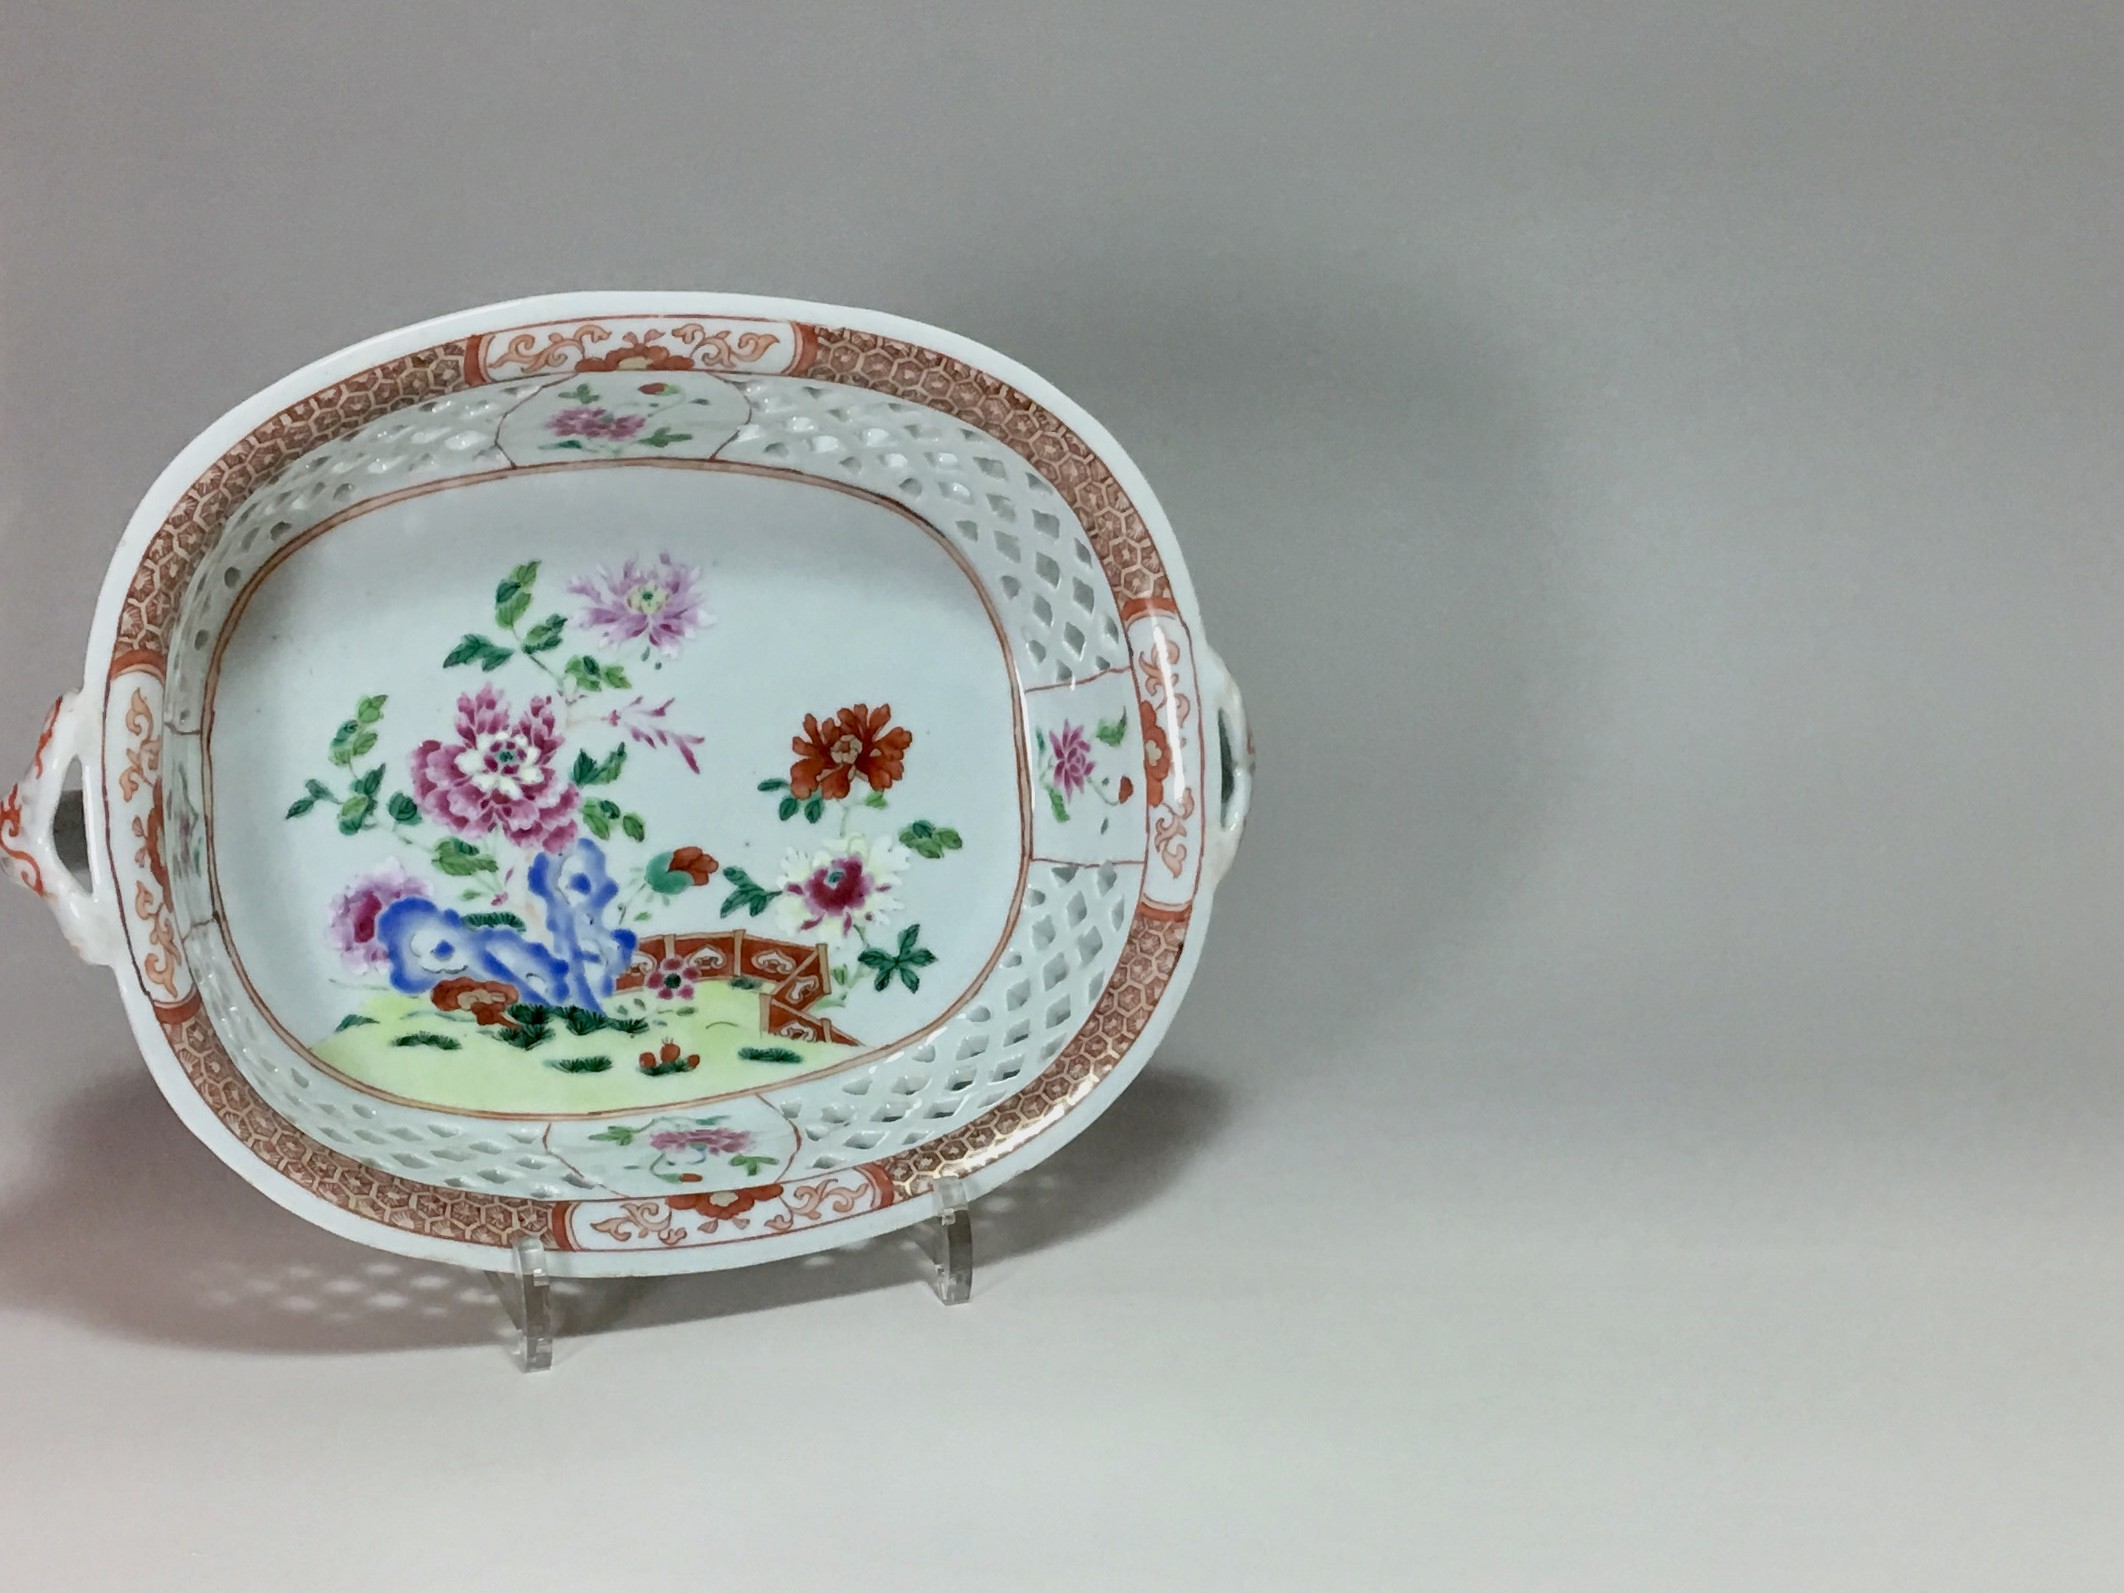 EAST INDIA COMPANY PORCELAIN - OPENWORK BASKETS FAMILY ROSE - EIGHTEENTH CENTURY